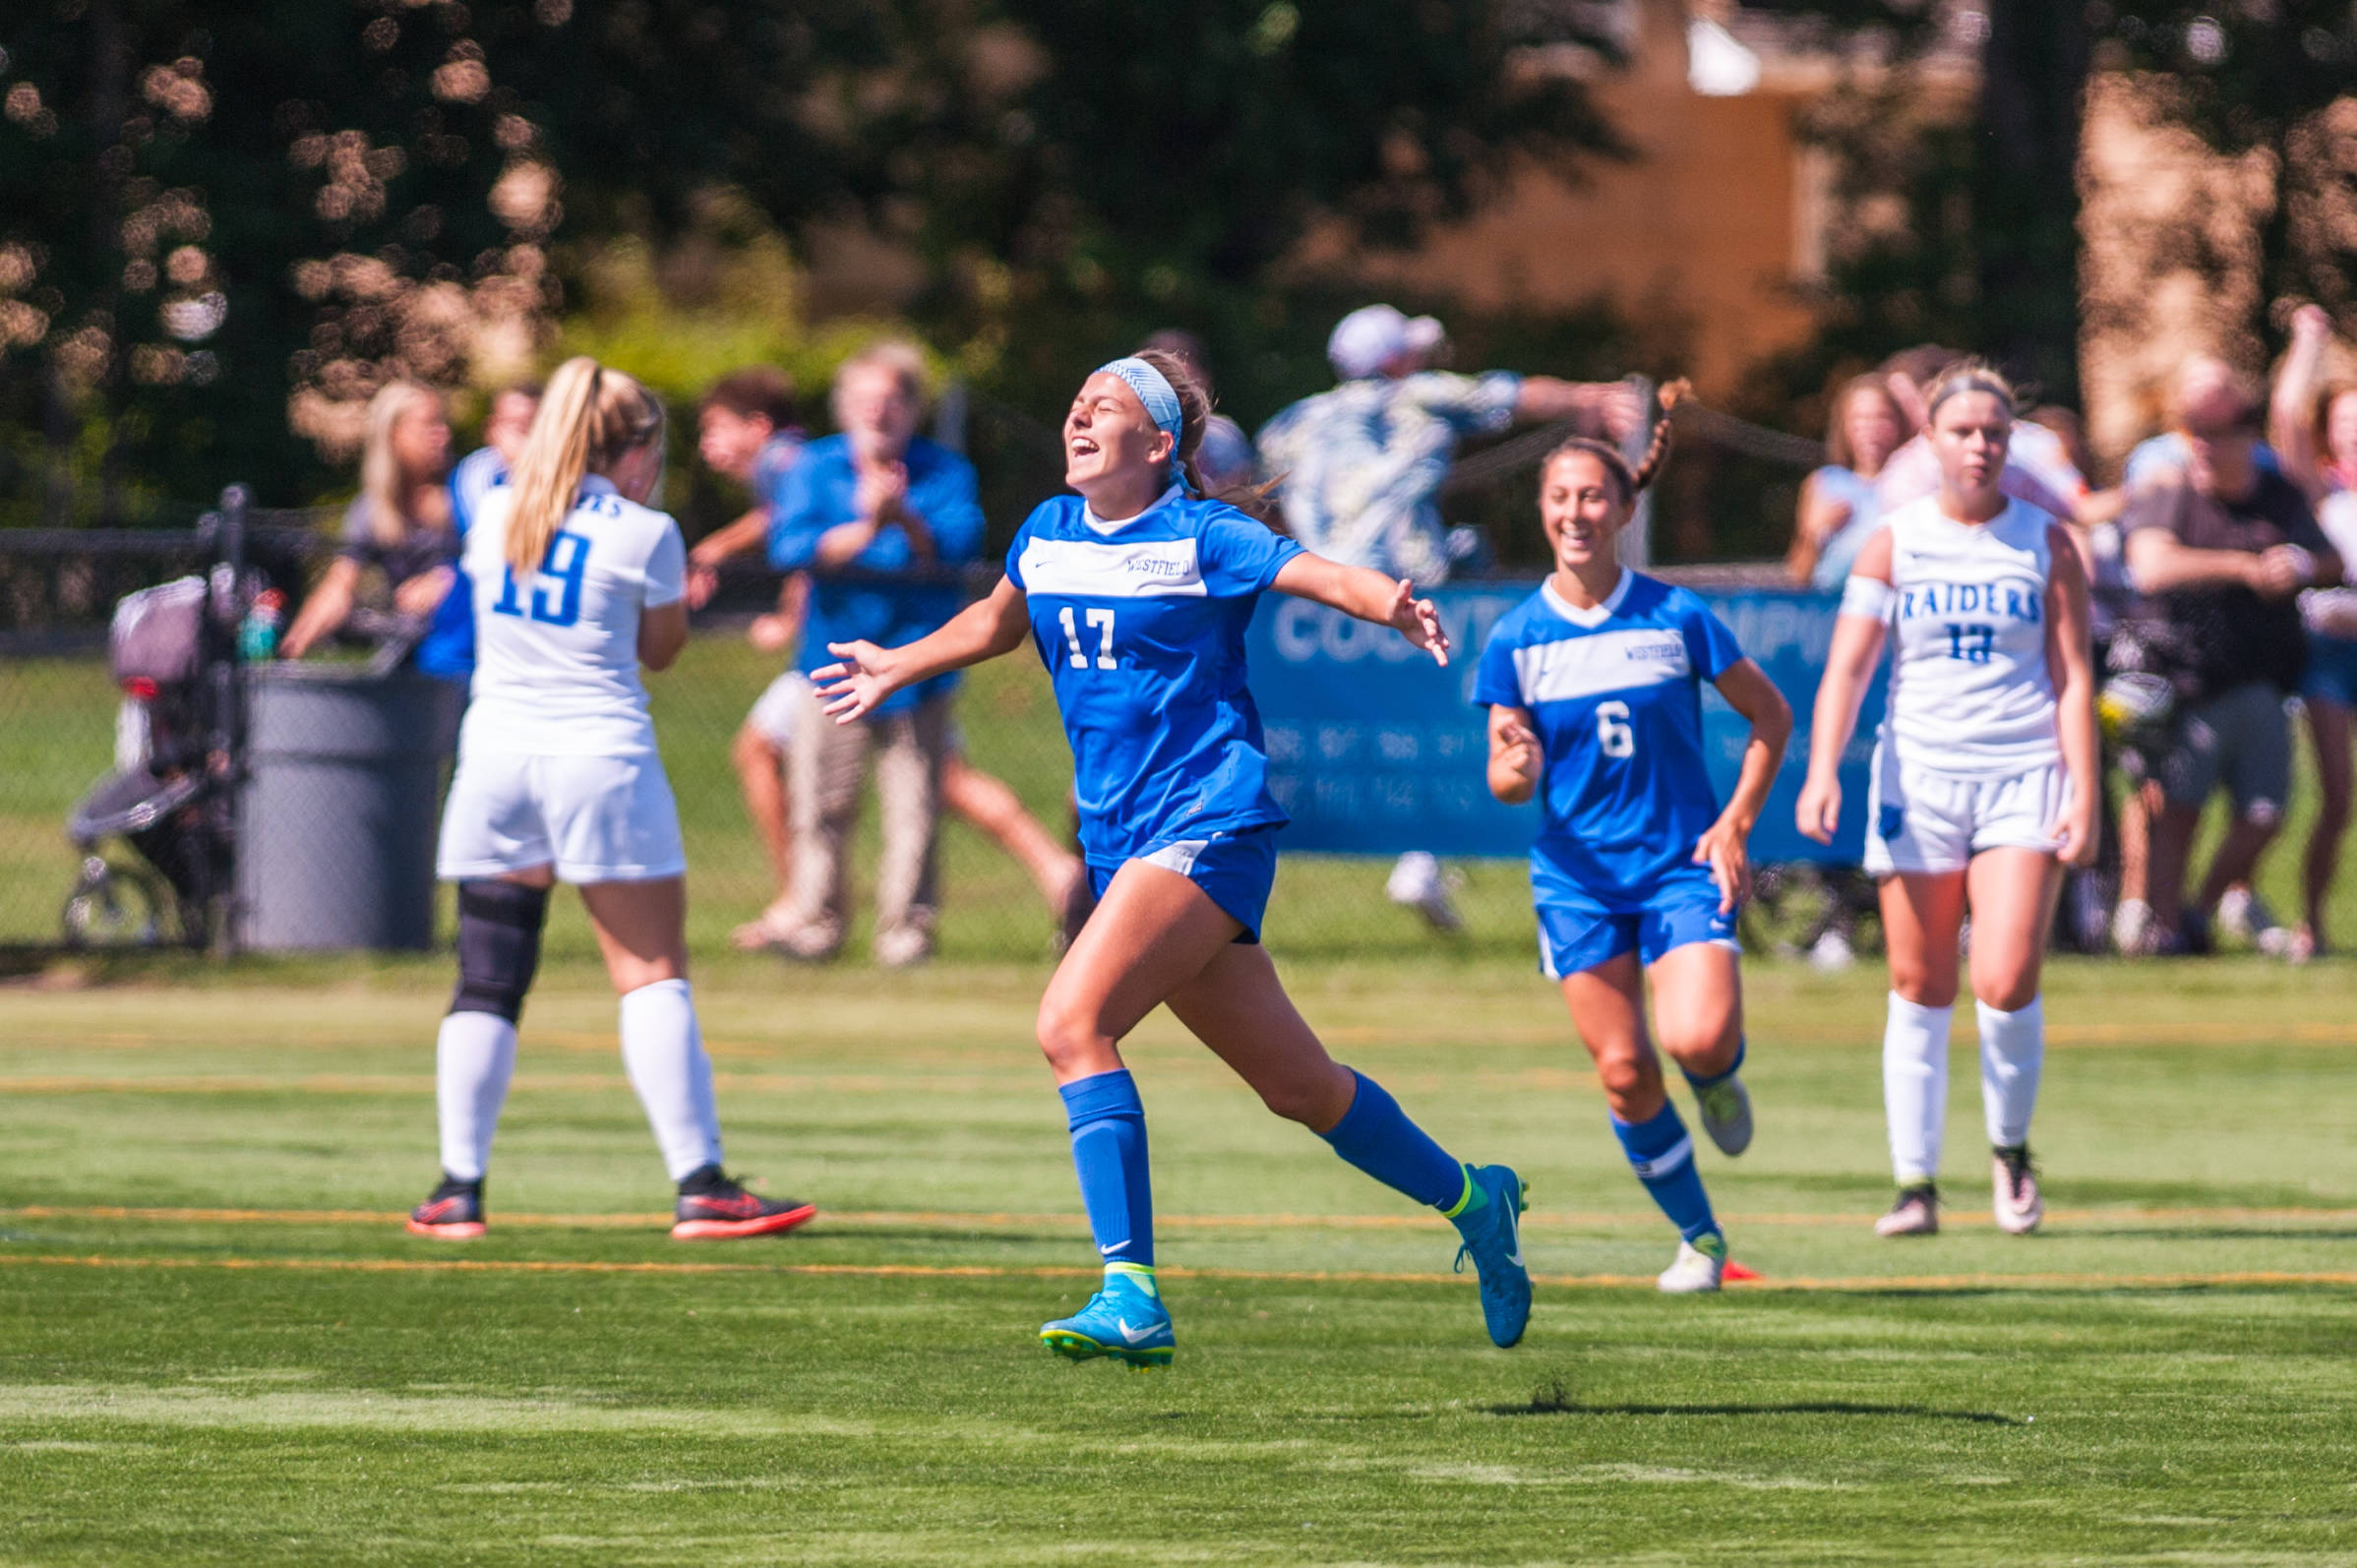 ebbd800ca655fbcdbd5b_20170907-WHS_Girls_Soccer_v_Scotch_Plains-_DWP7081.jpg